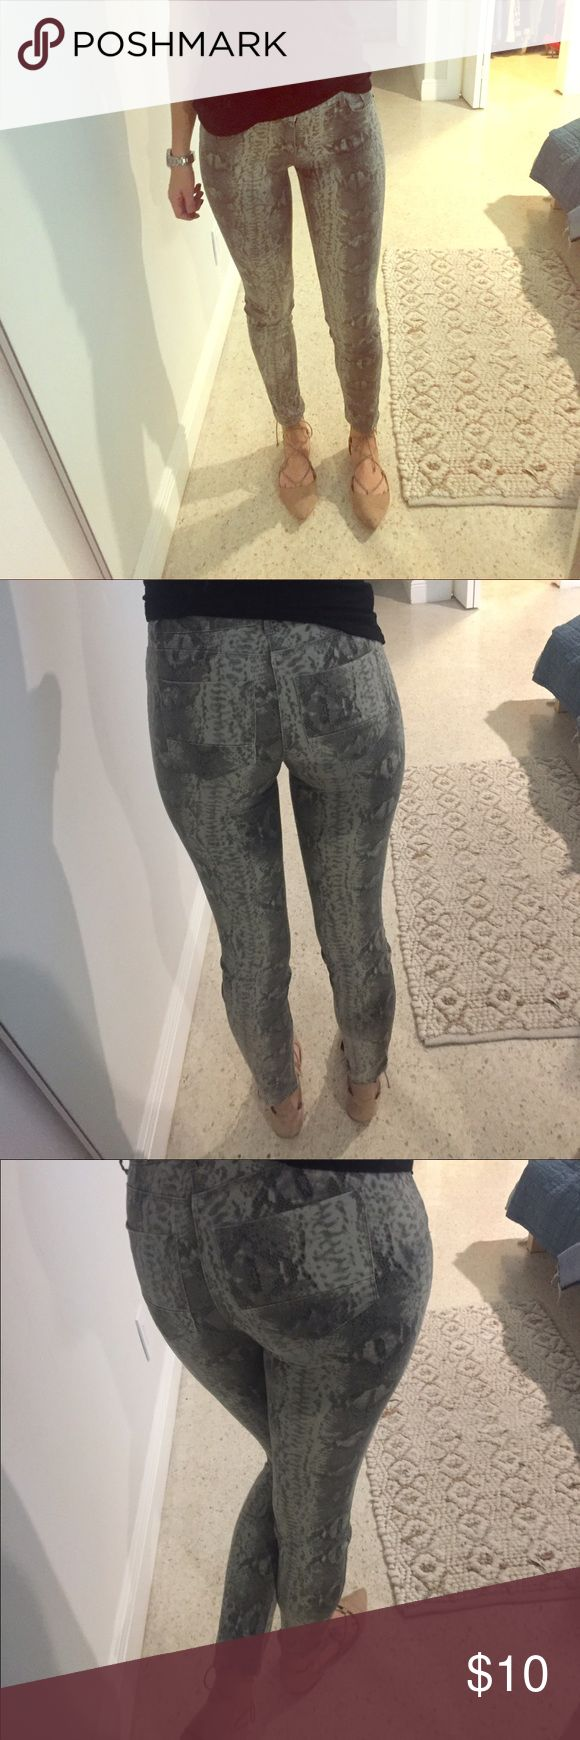 Python print skinny jeans Soft touch skinny jeggings in python print Pants Skinny